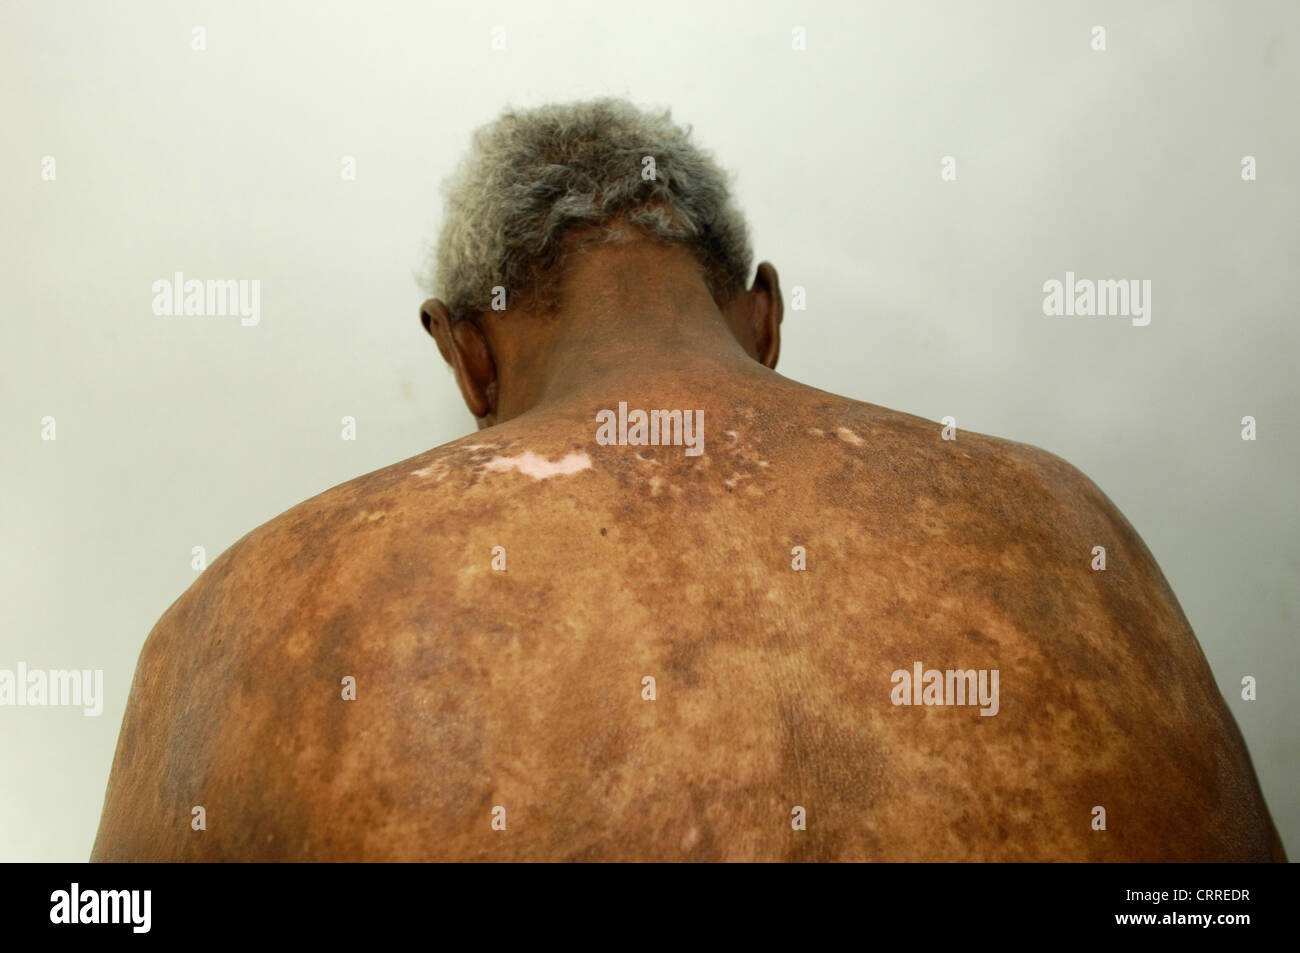 An elderly man with a fungal skin disease. - Stock Image